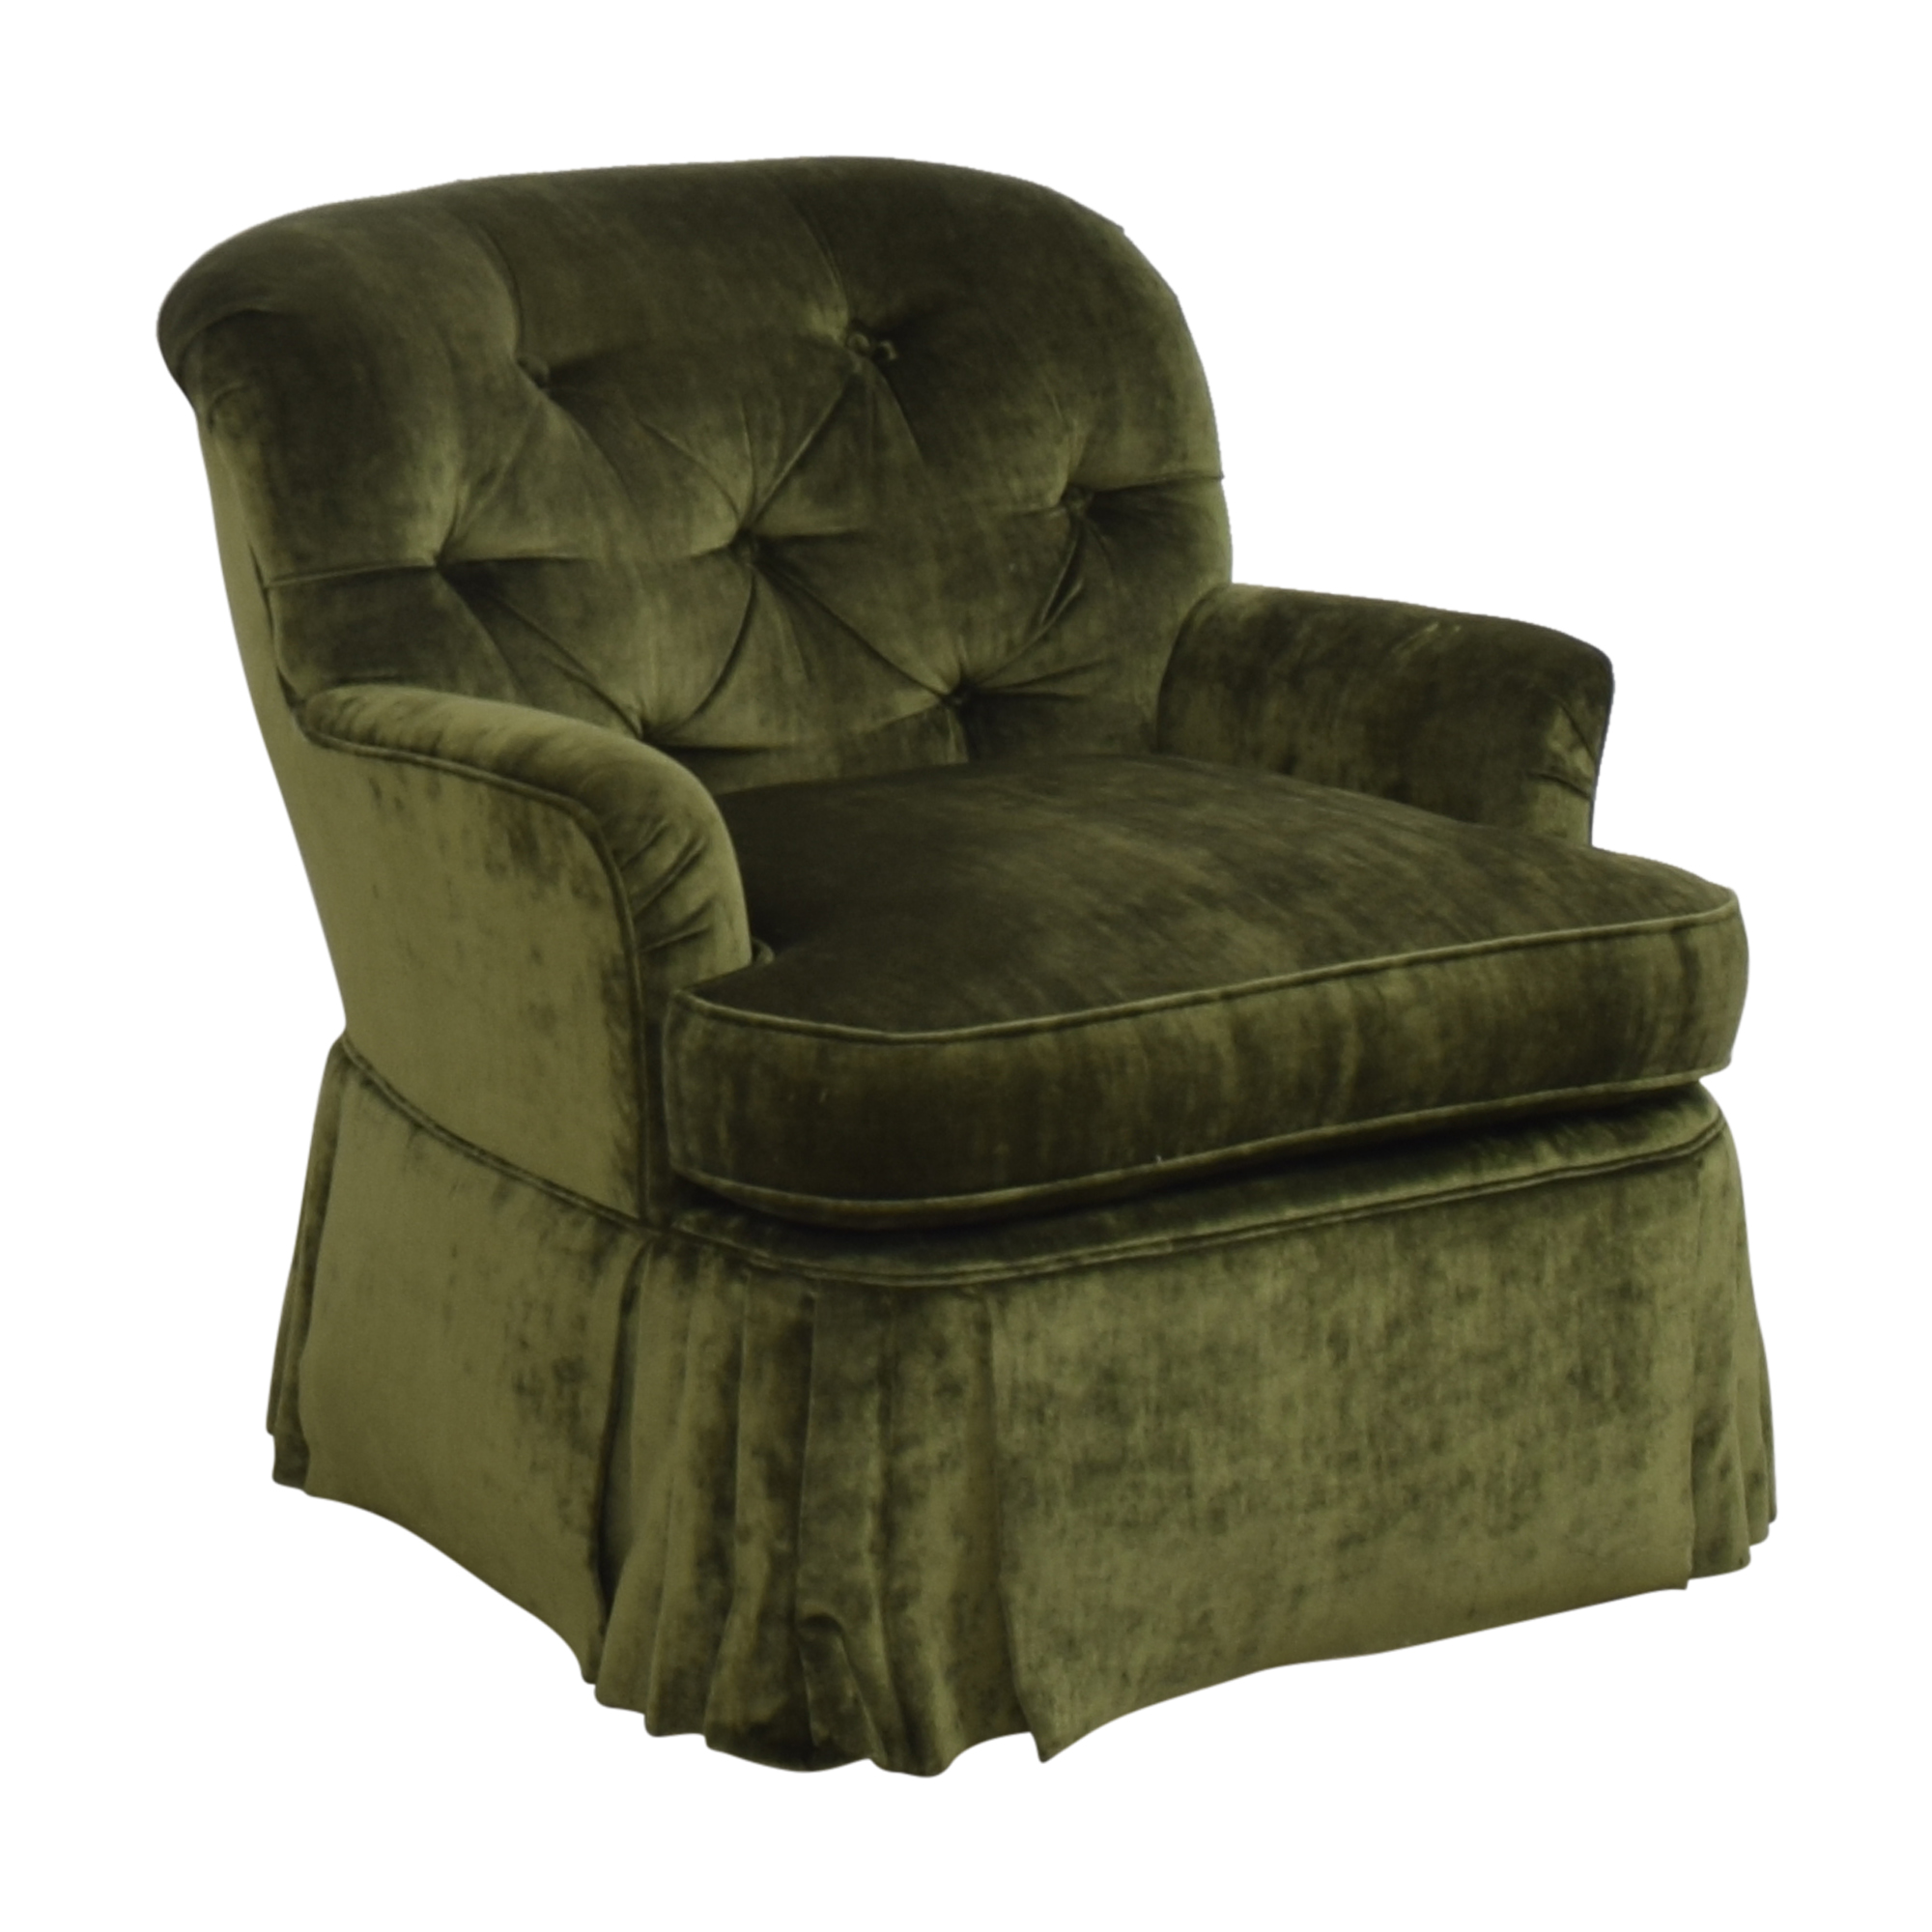 Calico Calico Corners Brandy Wine Design Accent Chair Accent Chairs